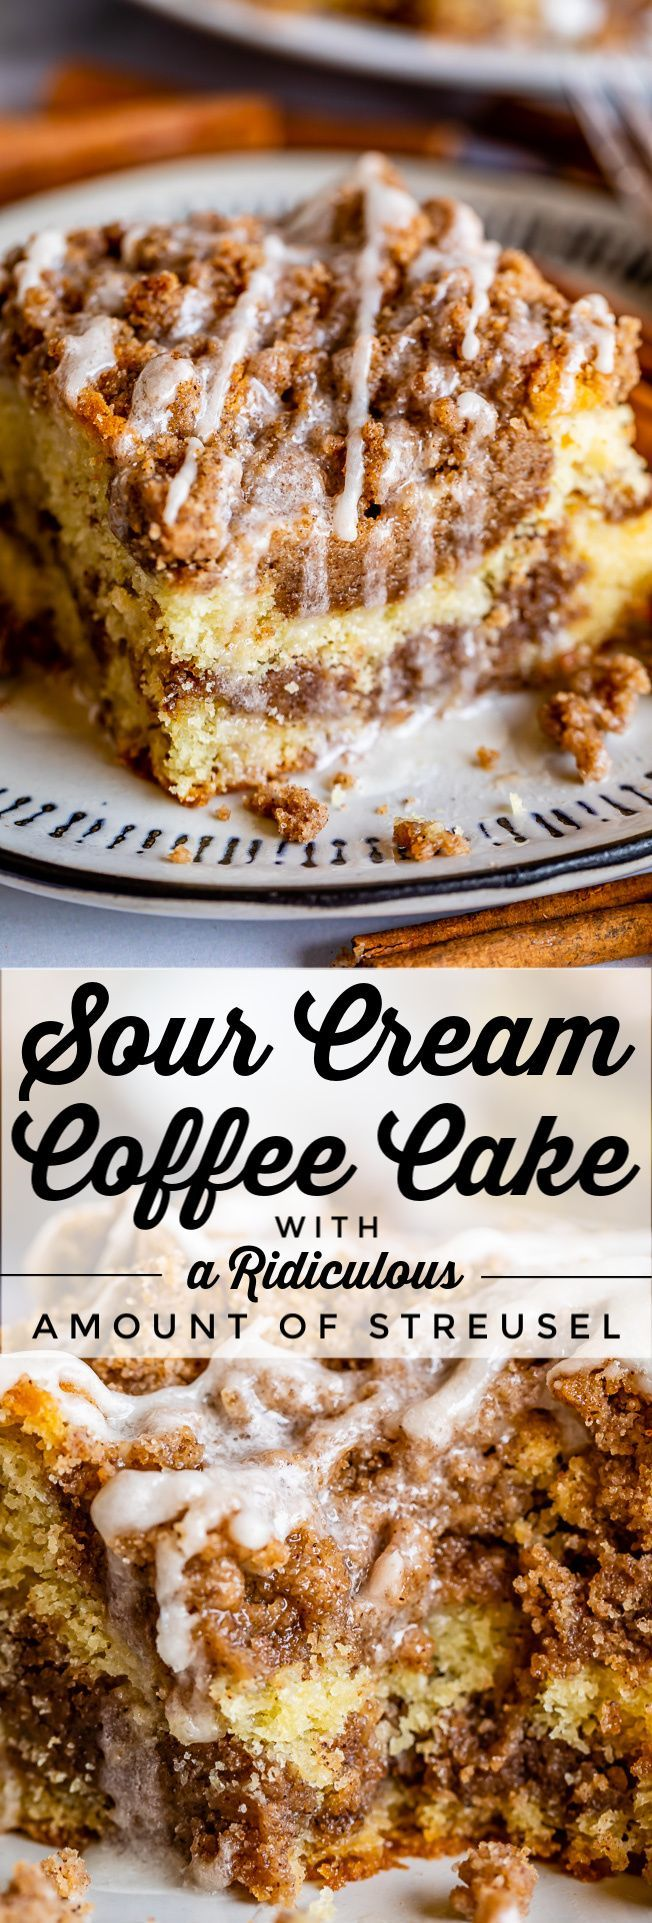 Sour Cream Coffee Cake, with a Ridiculous Amount of Streusel from The Food Charlatan. This is my FAVORITE recipe for Sour Cream Coffee Cake! My main complaint with Coffee Cake is that there is usually too much cake, not enough streusel. This recipe gives you the max amount of streusel without ruining the light fluffiness of the cake! A vanilla drizzle finishes it off!  #coffeecake #sourcream #icing #frosting #drizzle #easy #recipes #cinnamon #streusel #sourcream #crumb #crumble #moist #breakfast